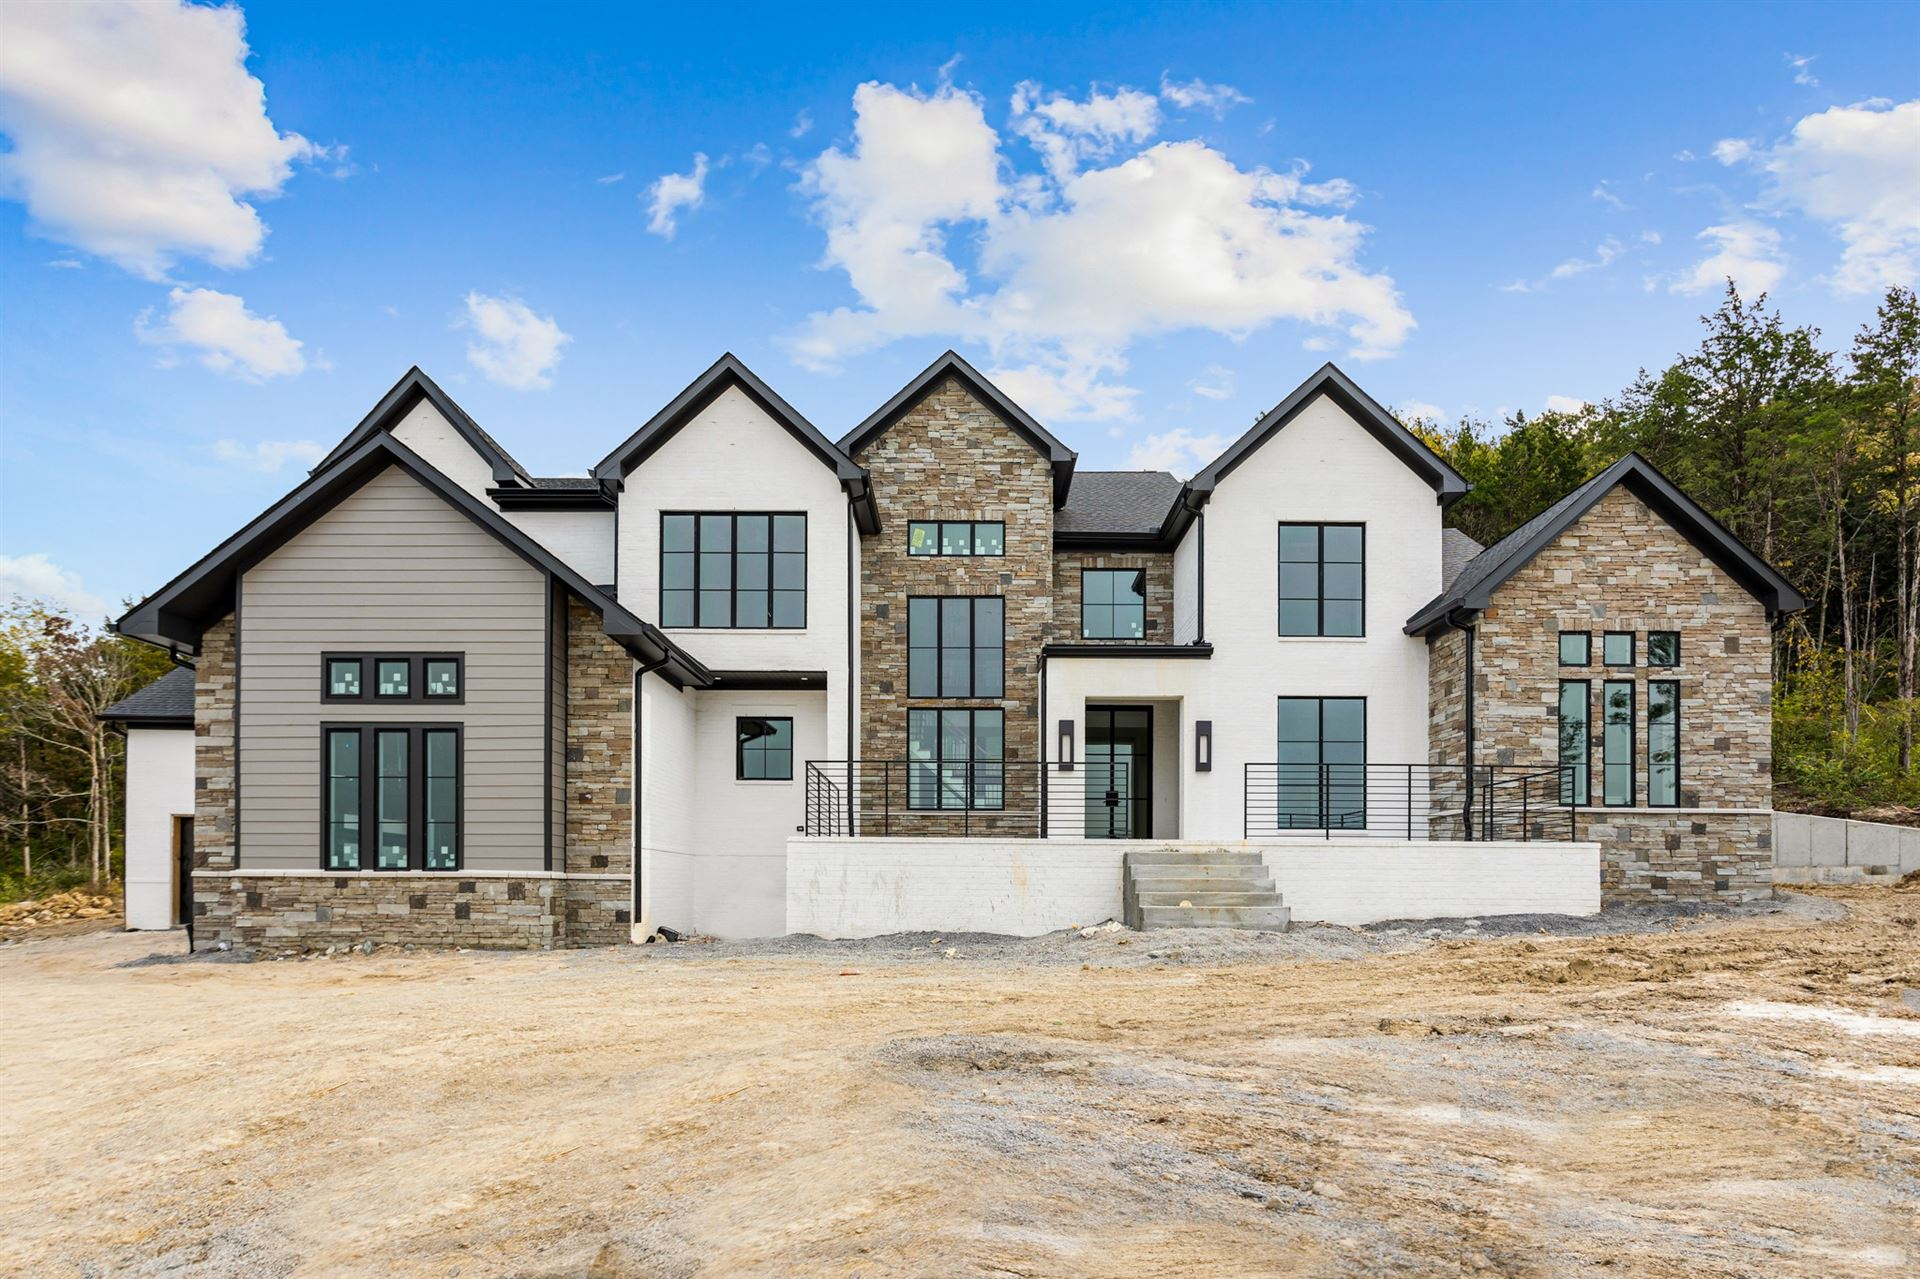 440 Beech Creek Rd N, Brentwood, TN 37027 - MLS#: 2166113